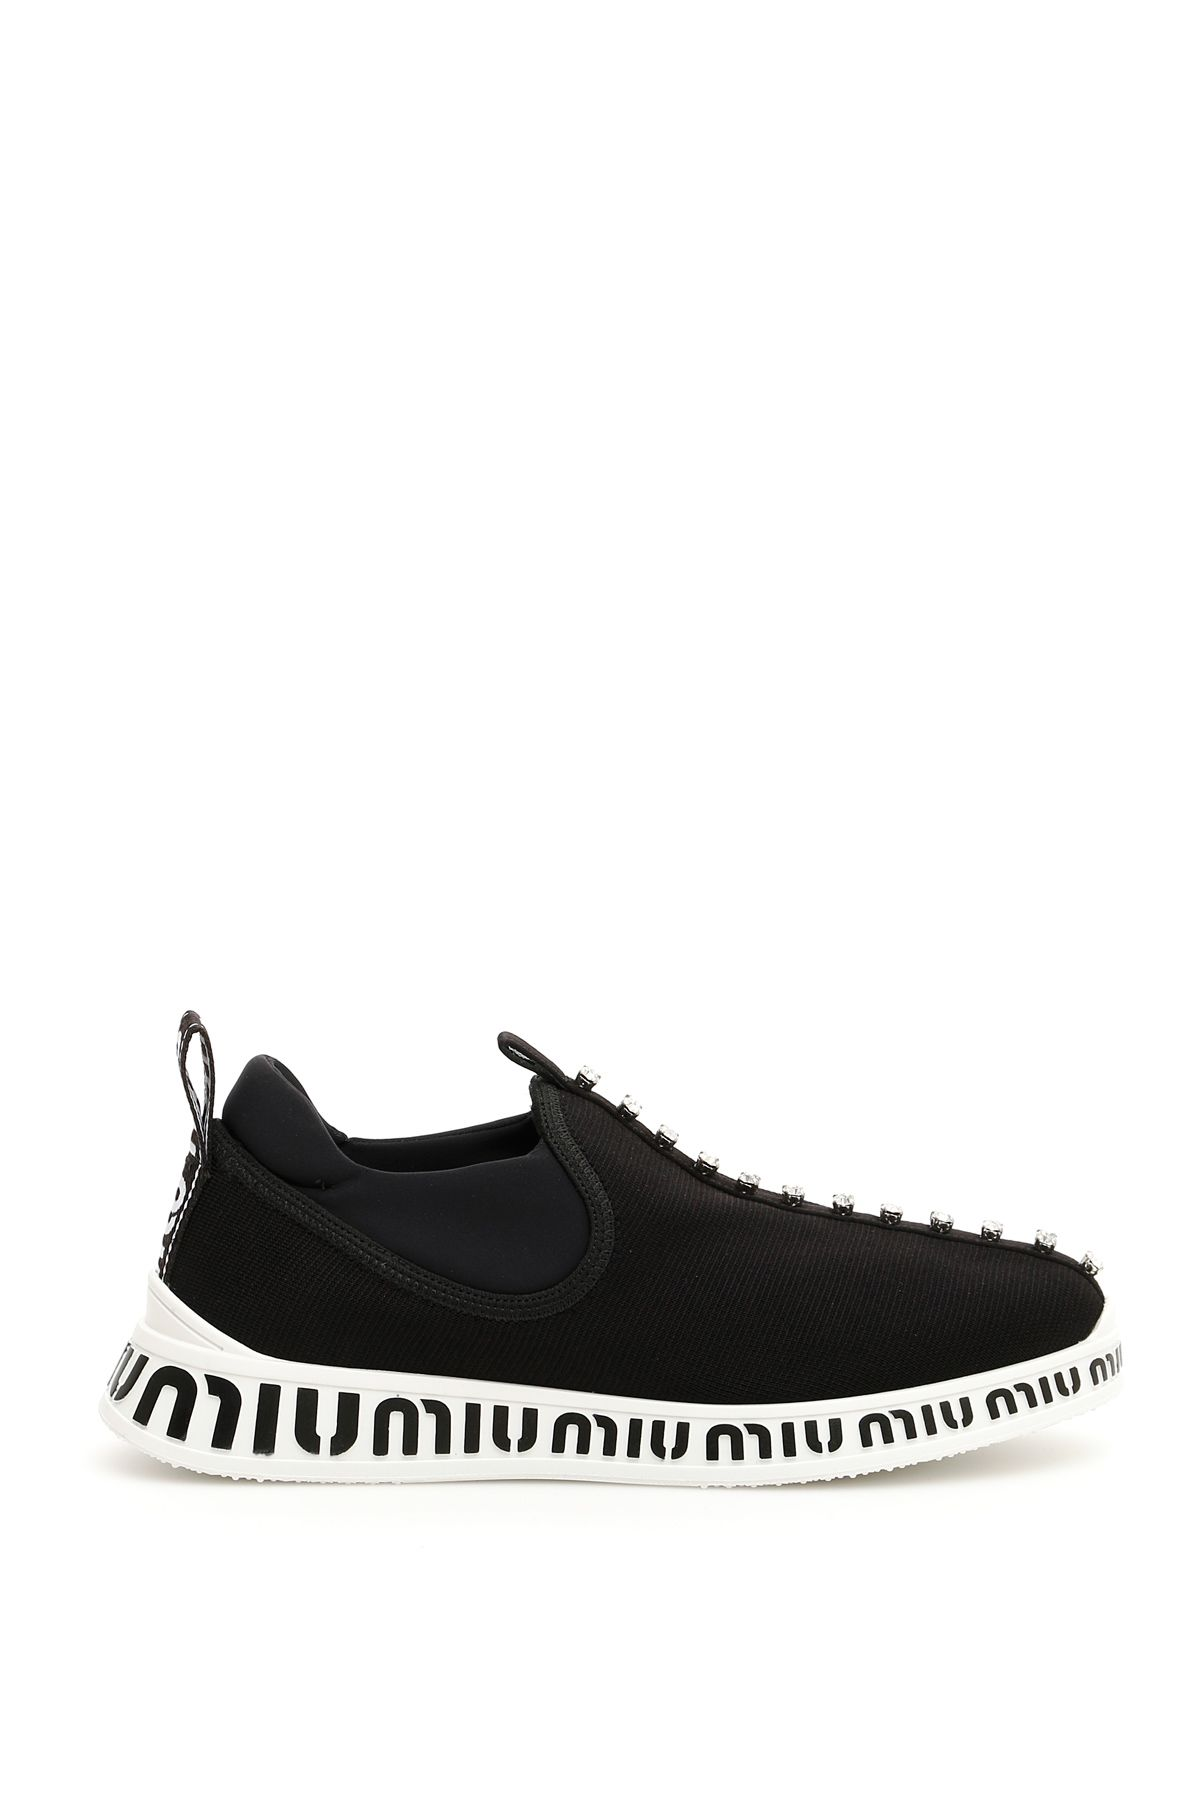 MIU RUN SNEAKERS